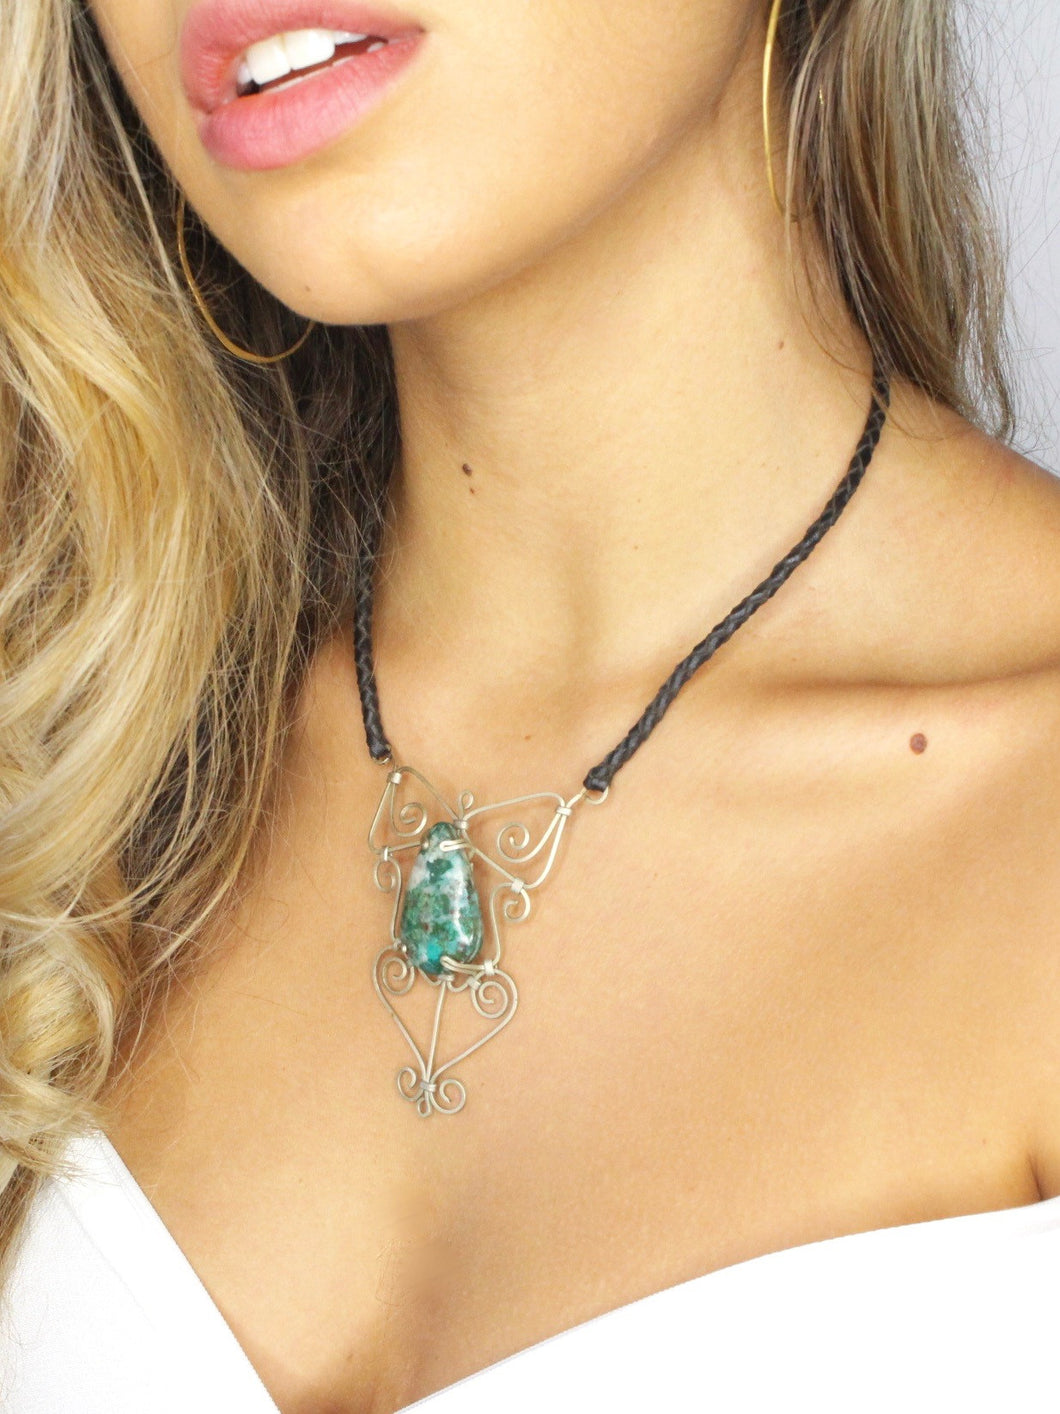 COMMUNICATION STONE • Chrysocolla Necklace